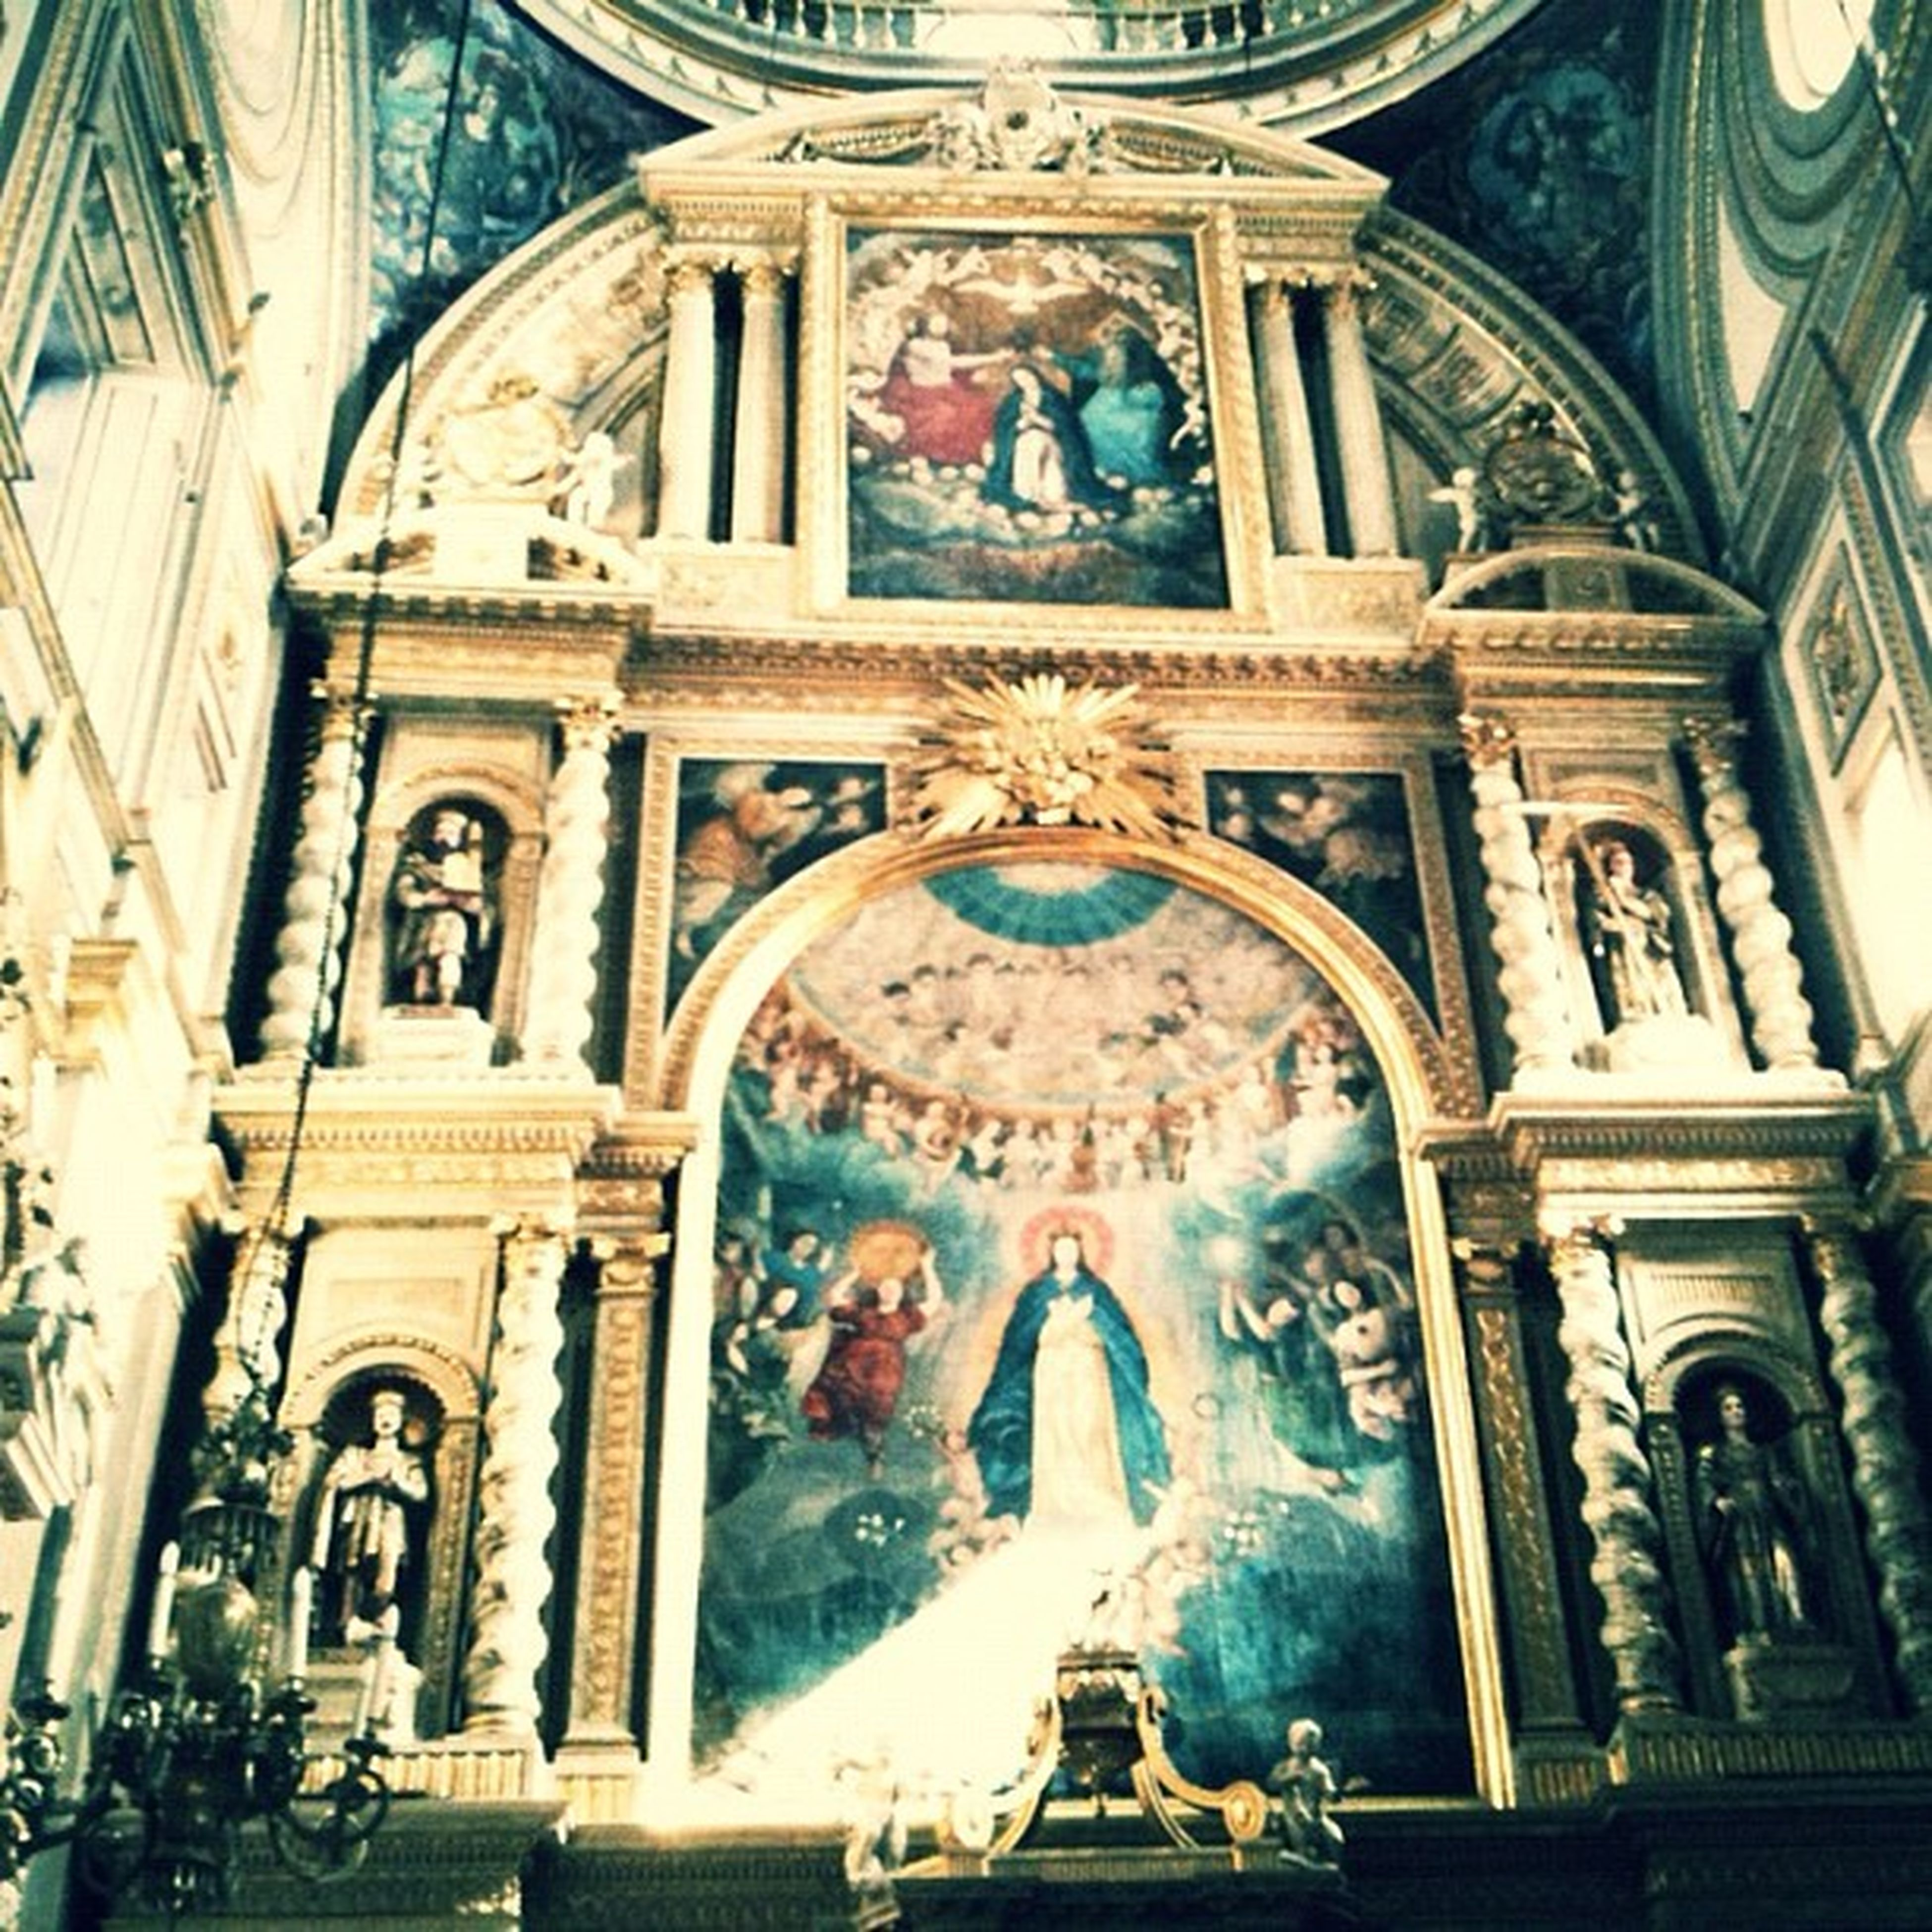 architecture, art and craft, place of worship, religion, art, human representation, low angle view, built structure, church, spirituality, creativity, sculpture, building exterior, statue, cathedral, arch, ornate